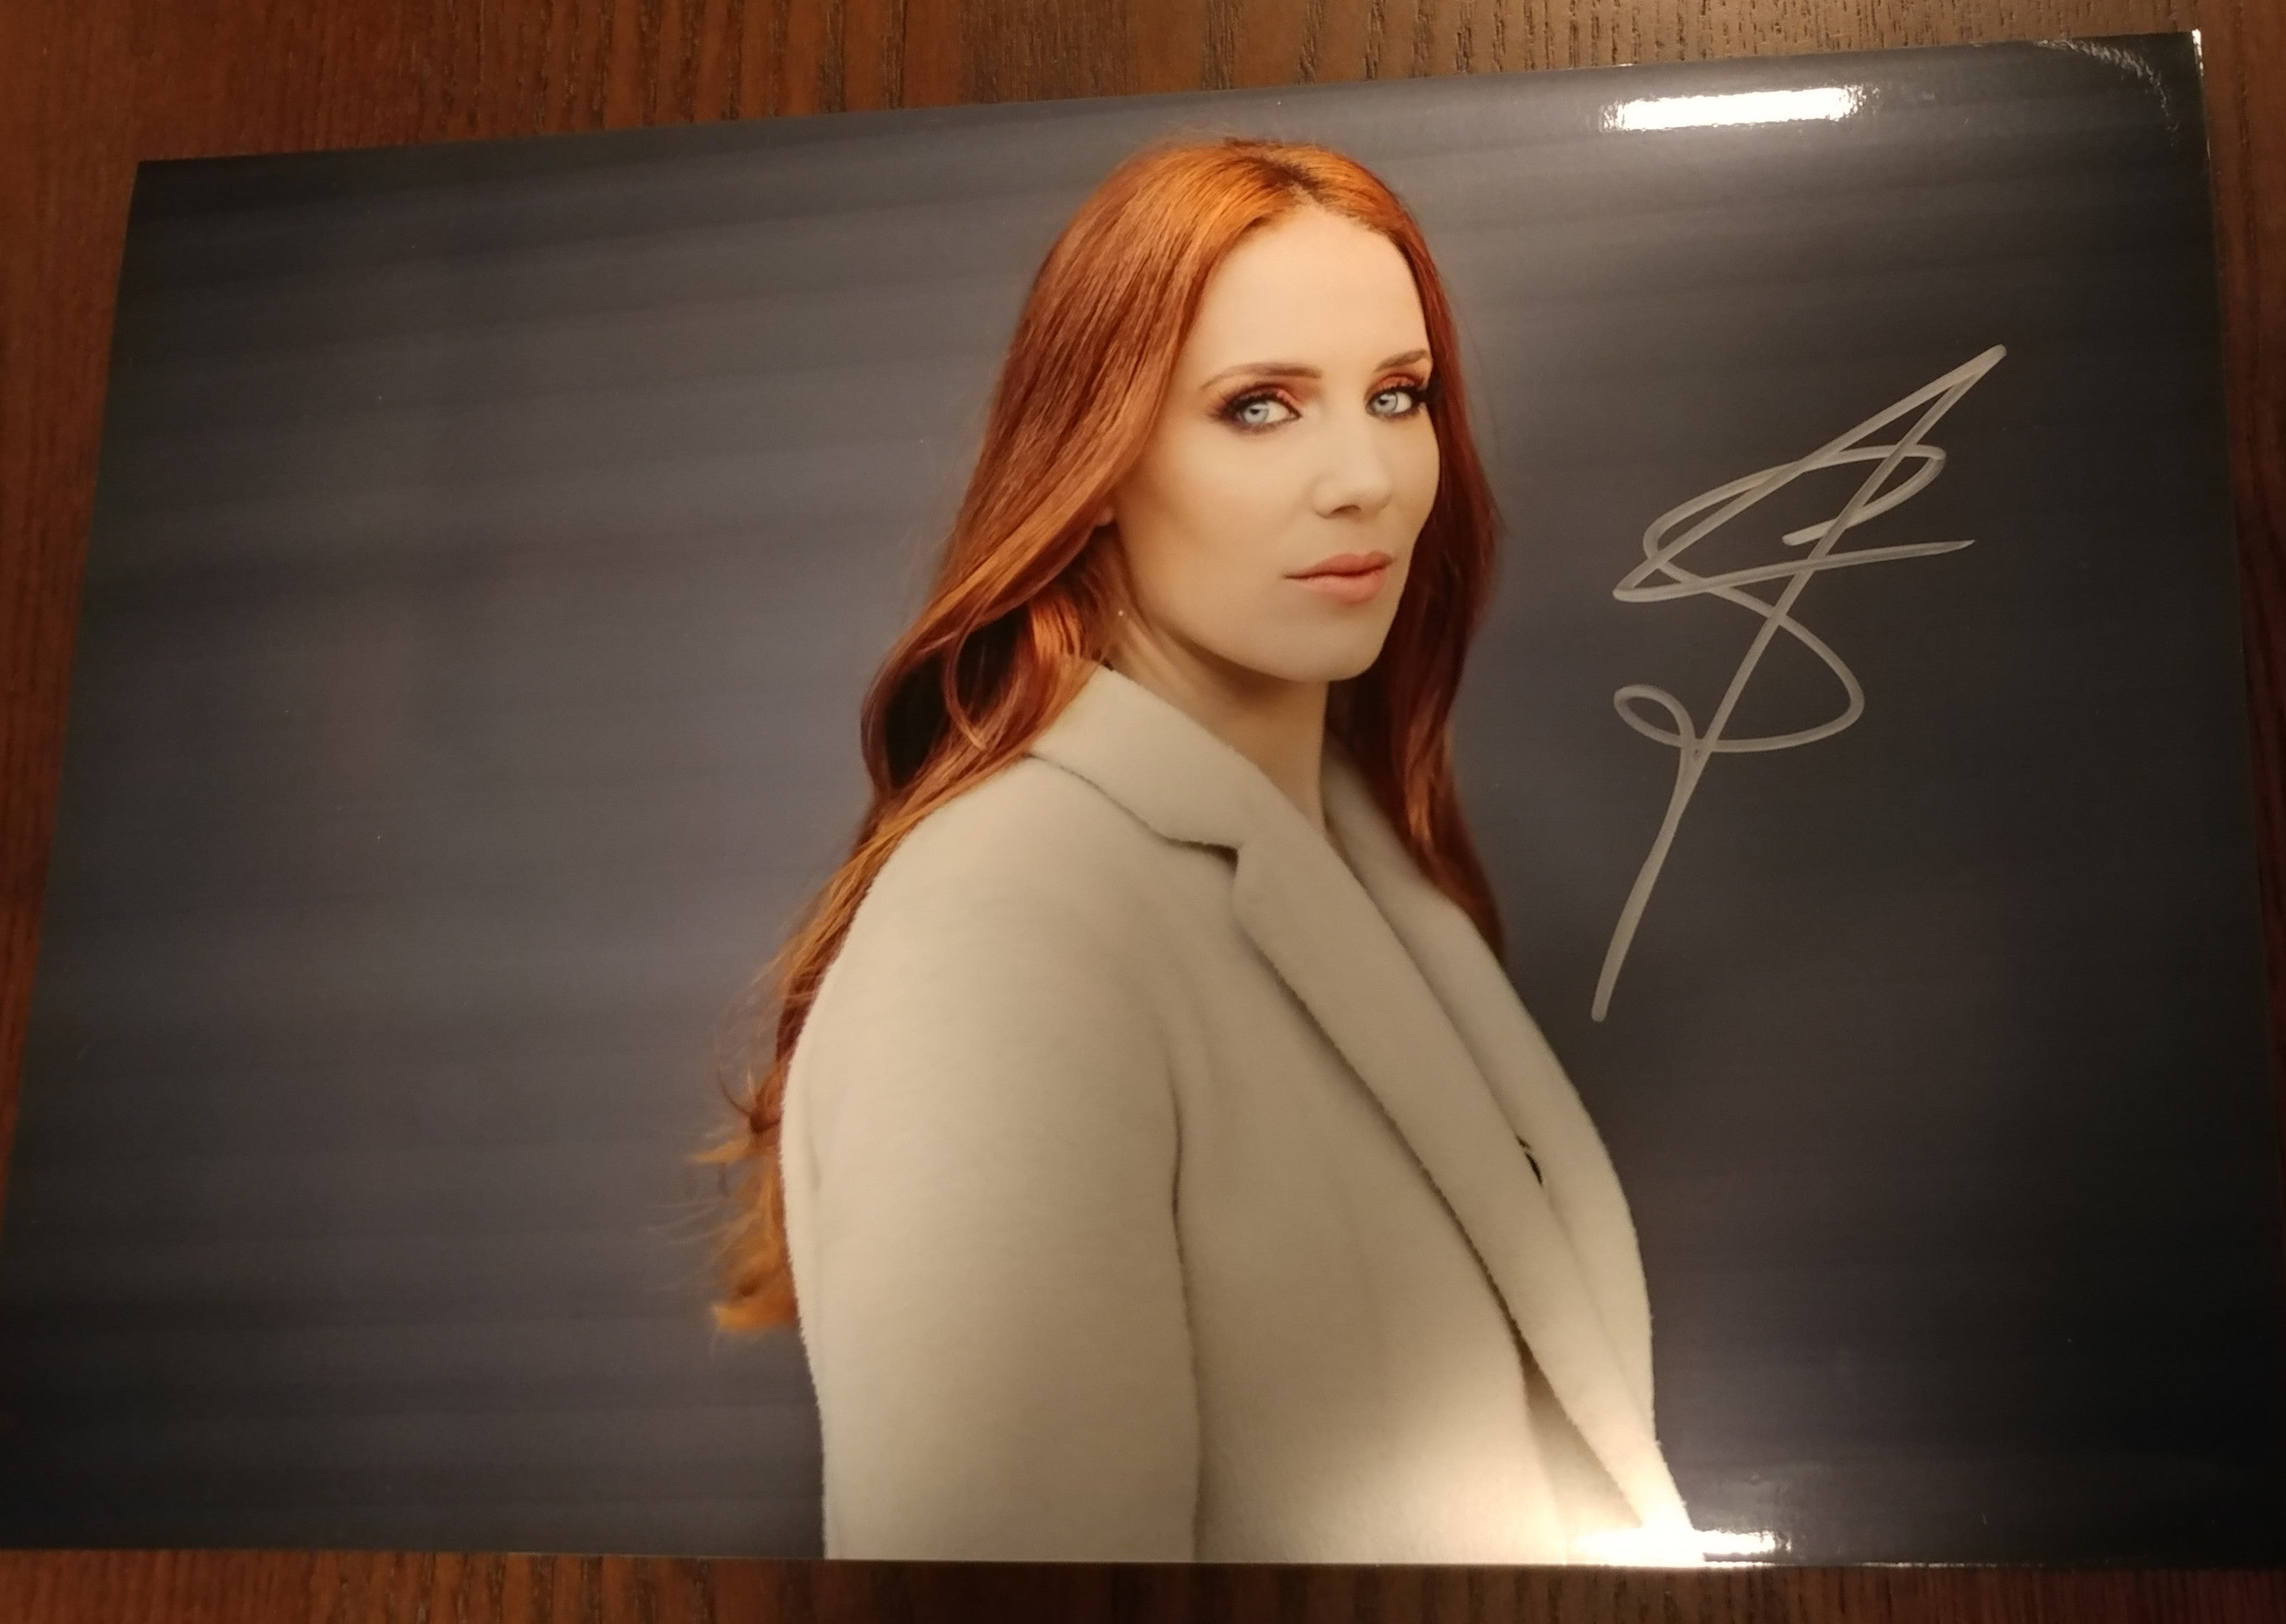 Simone Simmons - 1.2 signed 8x12 (damaged)